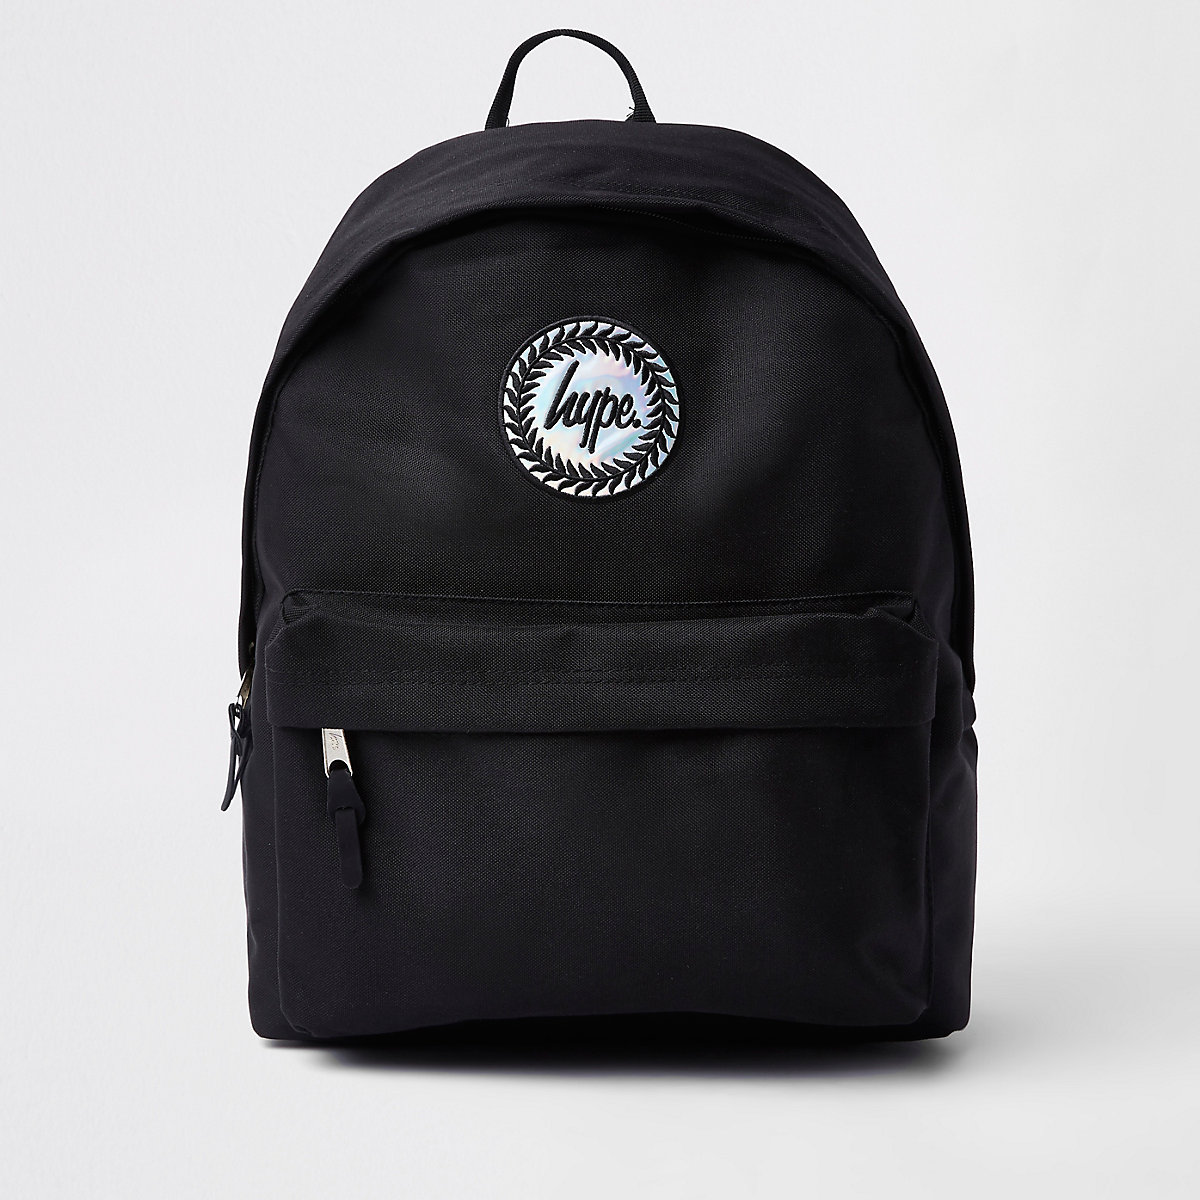 31522ad3df44 Boys Hype black hologram logo backpack - Bags   Wallets - Accessories - boys